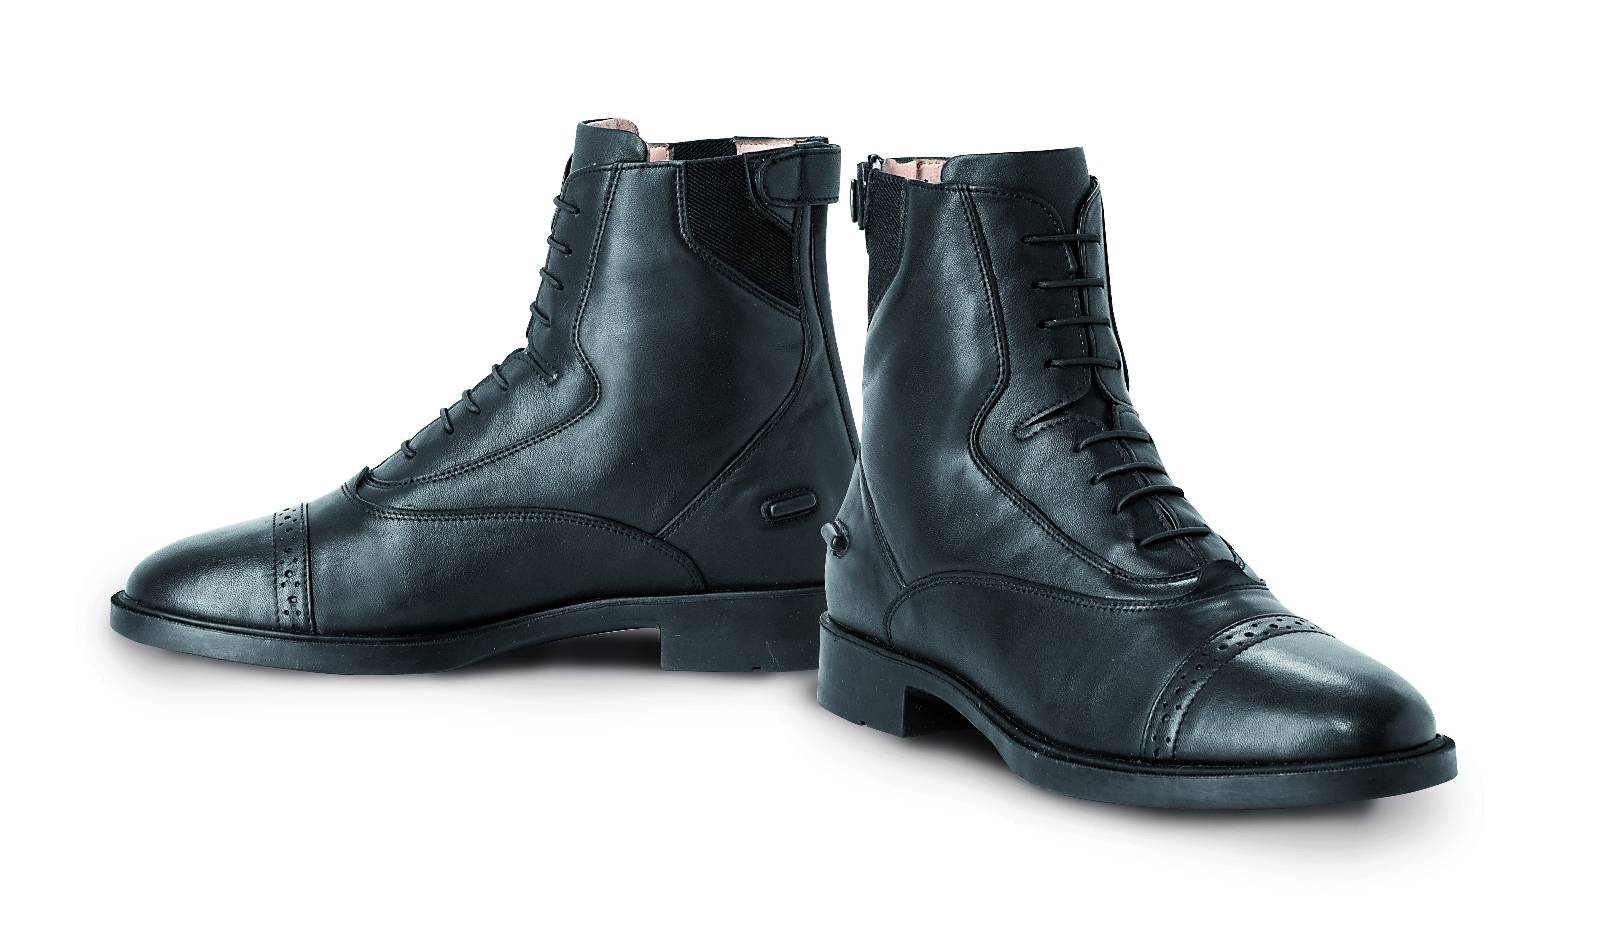 Tredstep Ireland Giotto Lace/Rear Zip Paddock Boots